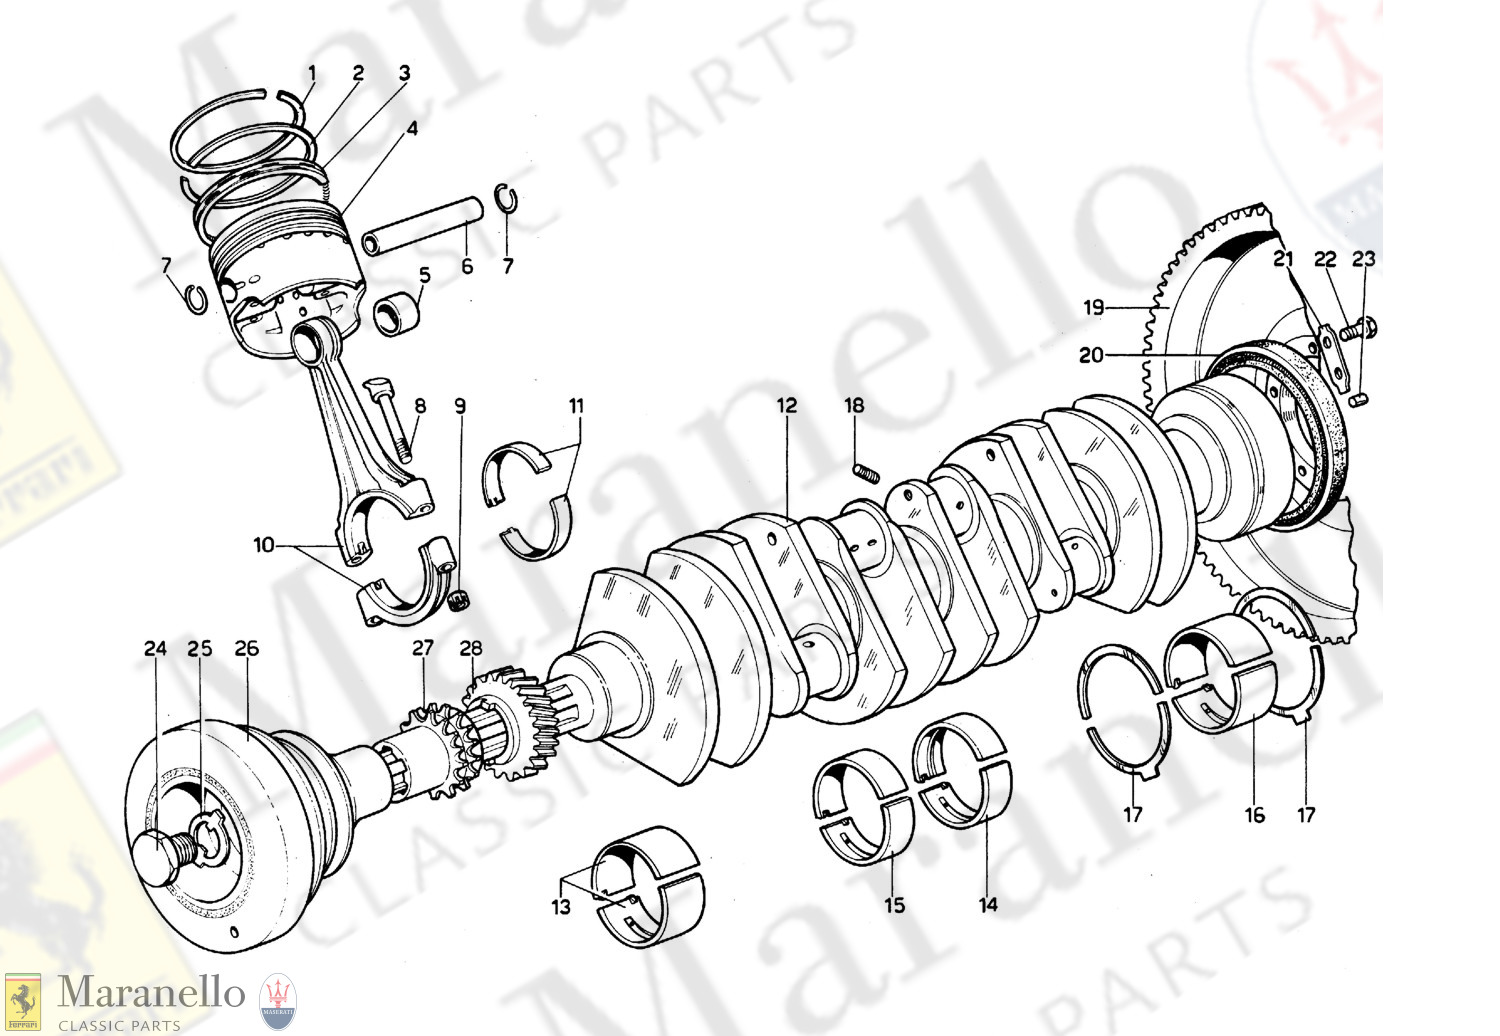 003 - Crankshaft, Connecting Rods And Pistons